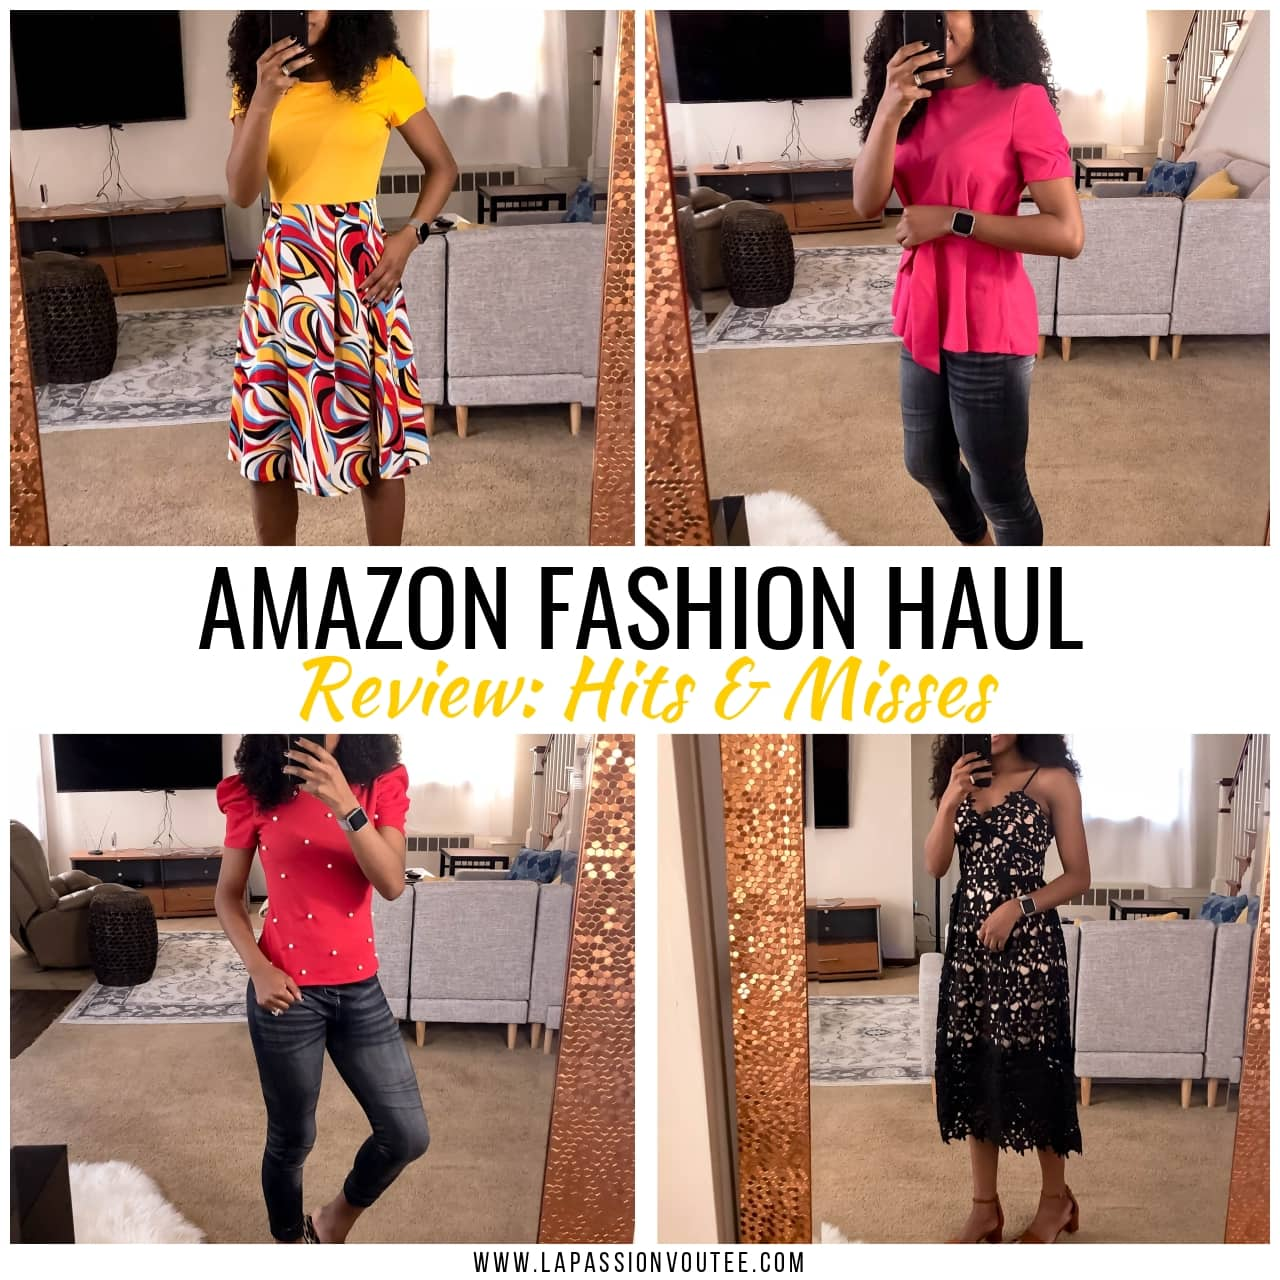 This is the ultimate Amazon clothing haul post with try-on photos sharing Amazon finds hits and misses. And most of these items cost under $20! Keep reading to discover tips on how to maximize your savings on Amazon.